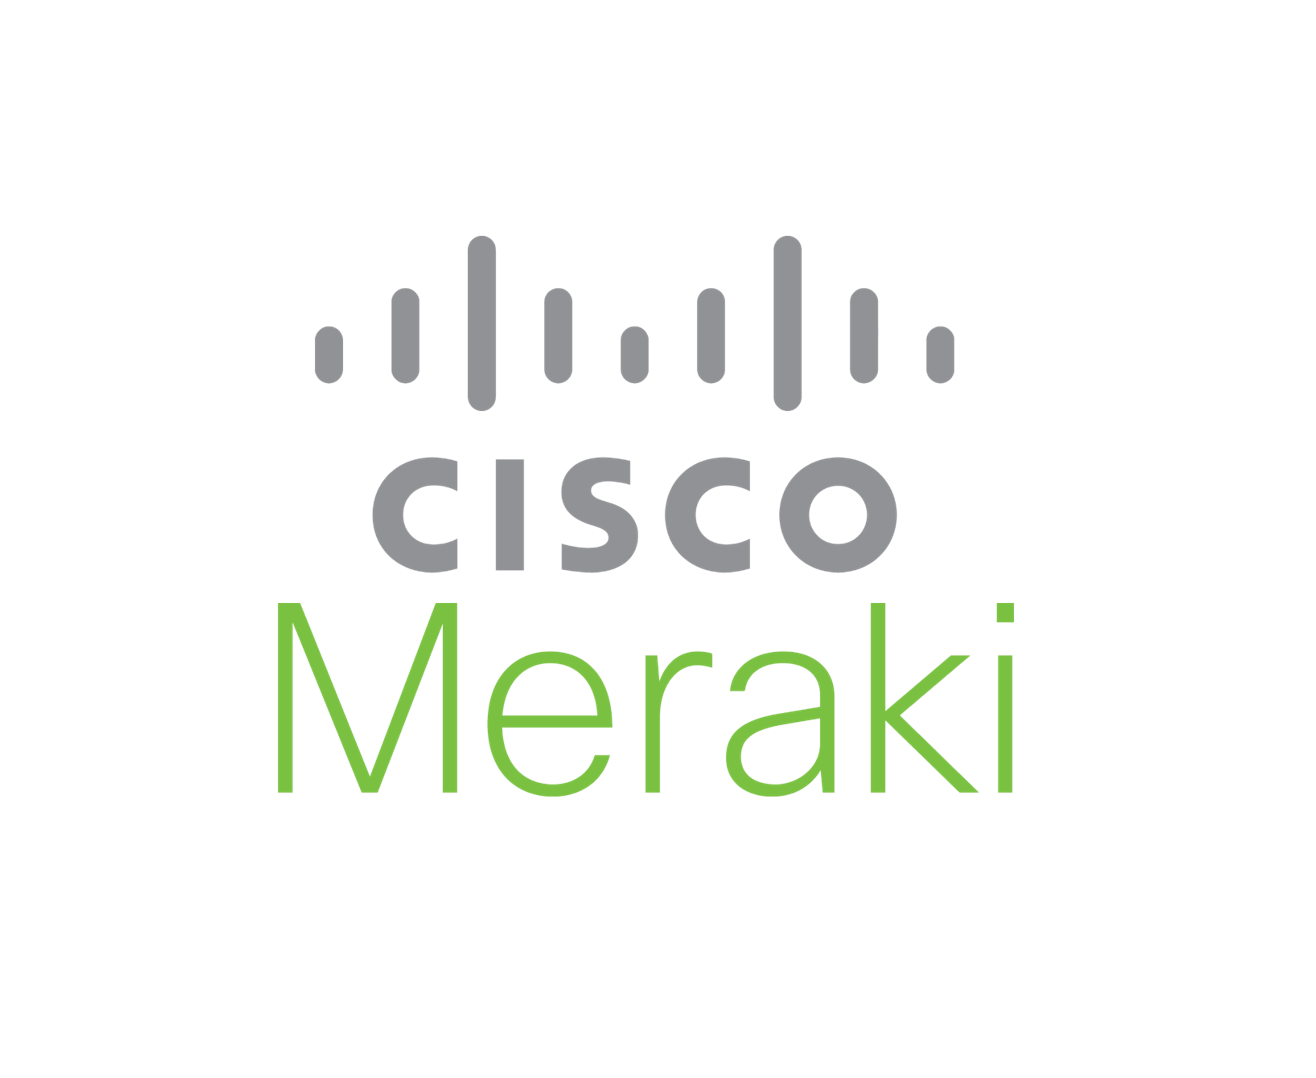 CISCO Meraki Firewall logo